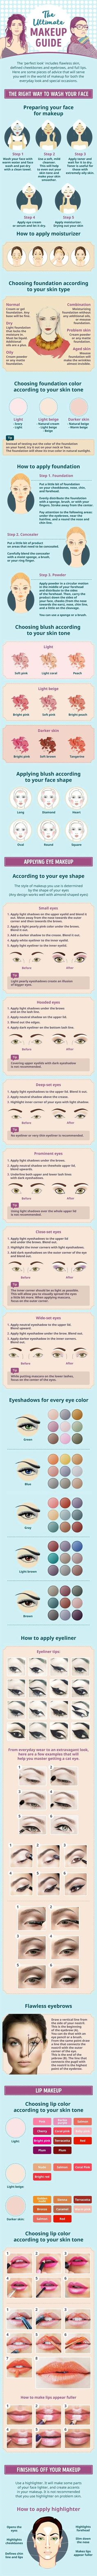 Best Makeup Tutorials for Teens -The Ultimate Makeup Guide You Can�t Live Without - Easy Makeup Ideas for Beginners - Step by Step Tutorials for Foundation, Eye Shadow, Lipstick, Cheeks, Contour, Eyebrows and Eyes - Awesome Makeup Hacks and Tips for Simpl